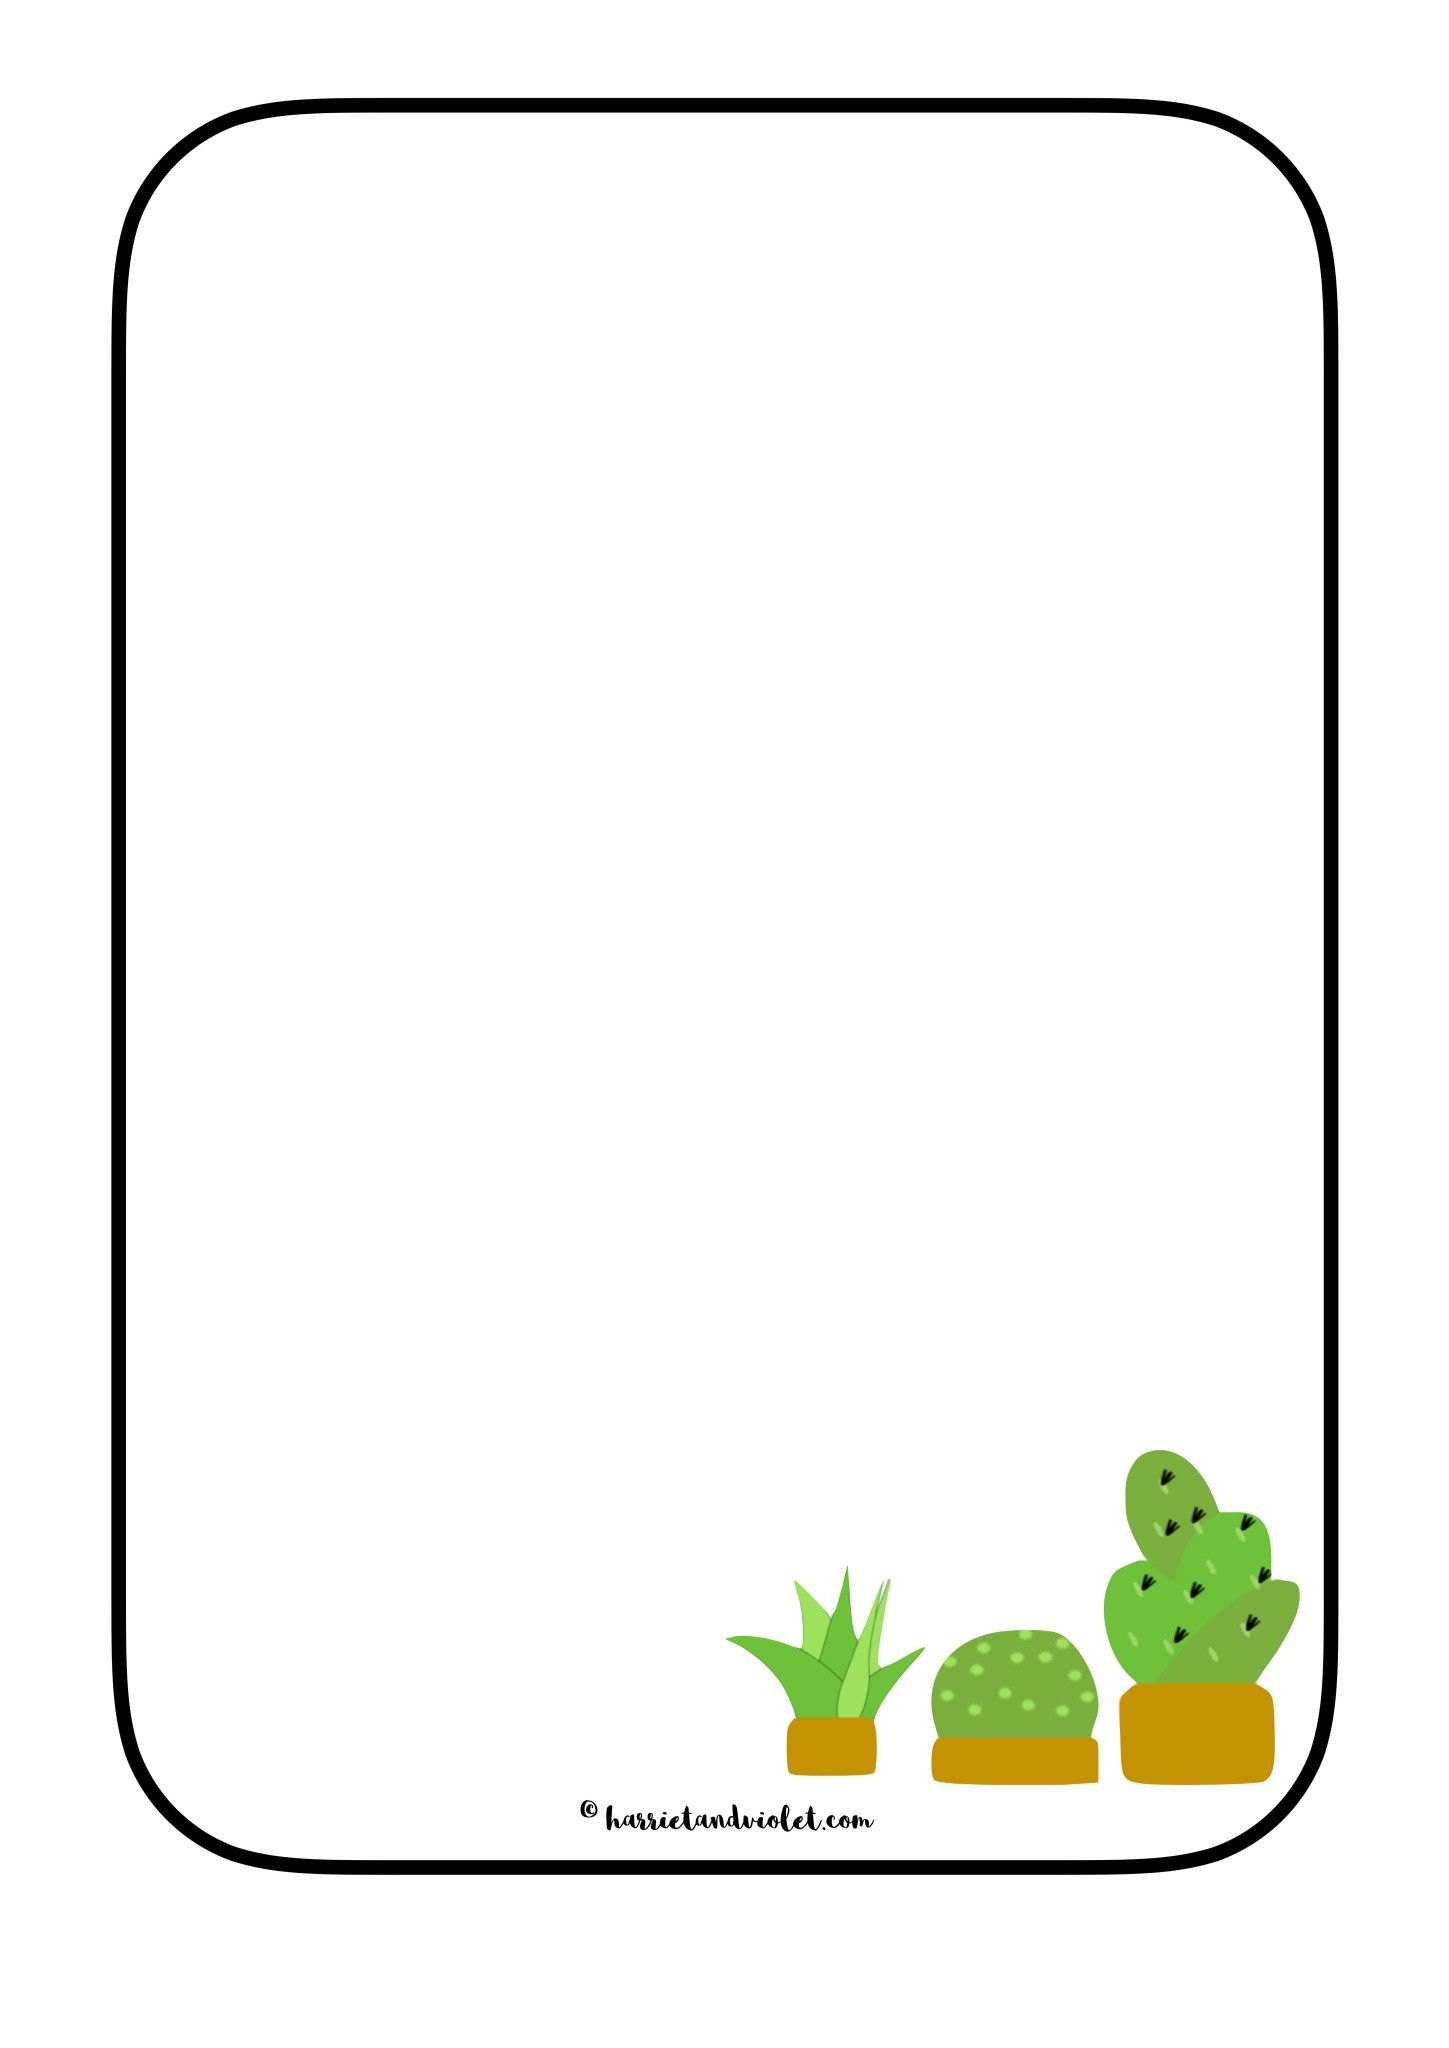 Cactus clipart border image Cactus Plant Border Paper - Free Teaching Resources | EYFS + Primary ... image